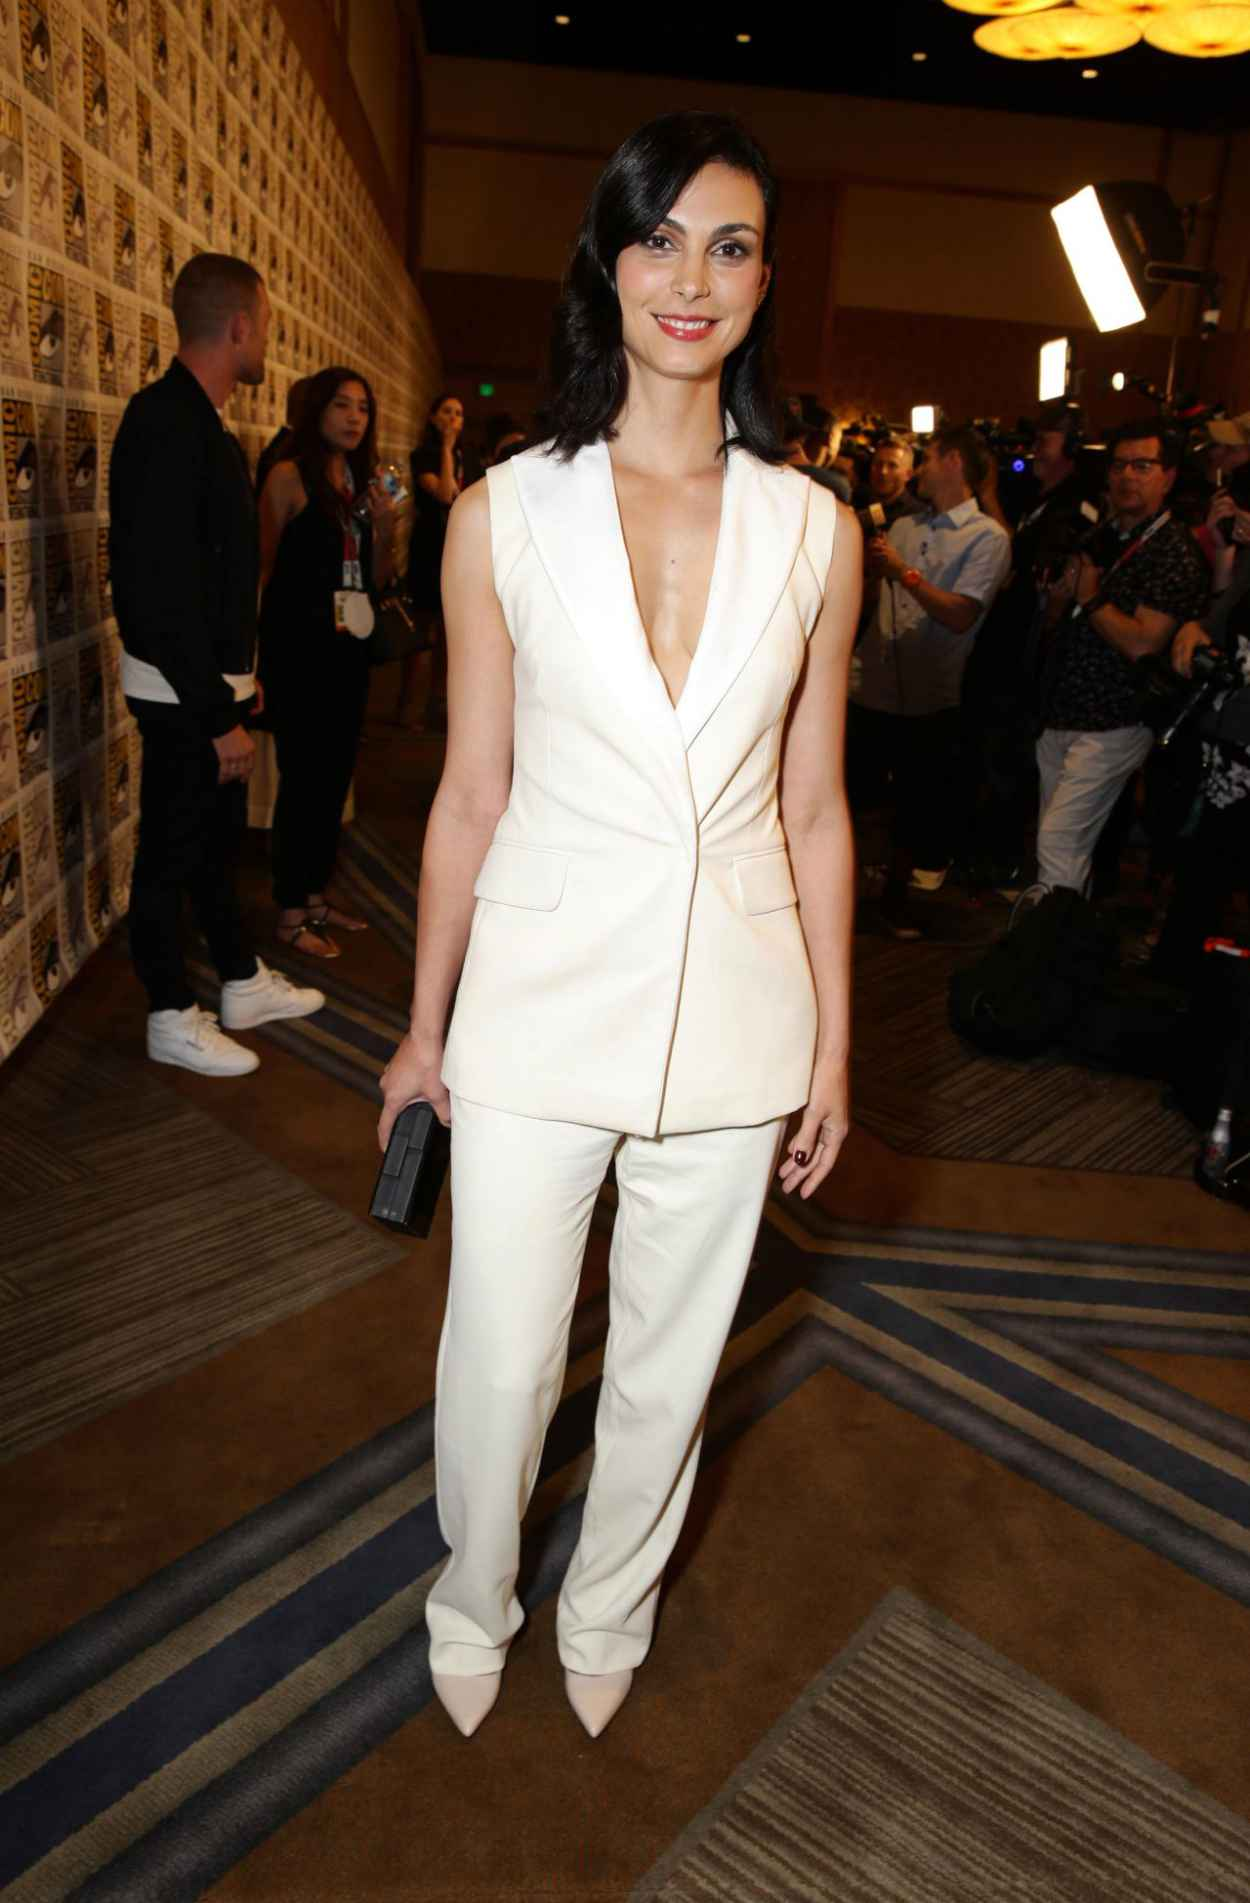 Morena Baccarin - 20th Century Fox press Line at Comic-Con in San Diego, July 2015-4